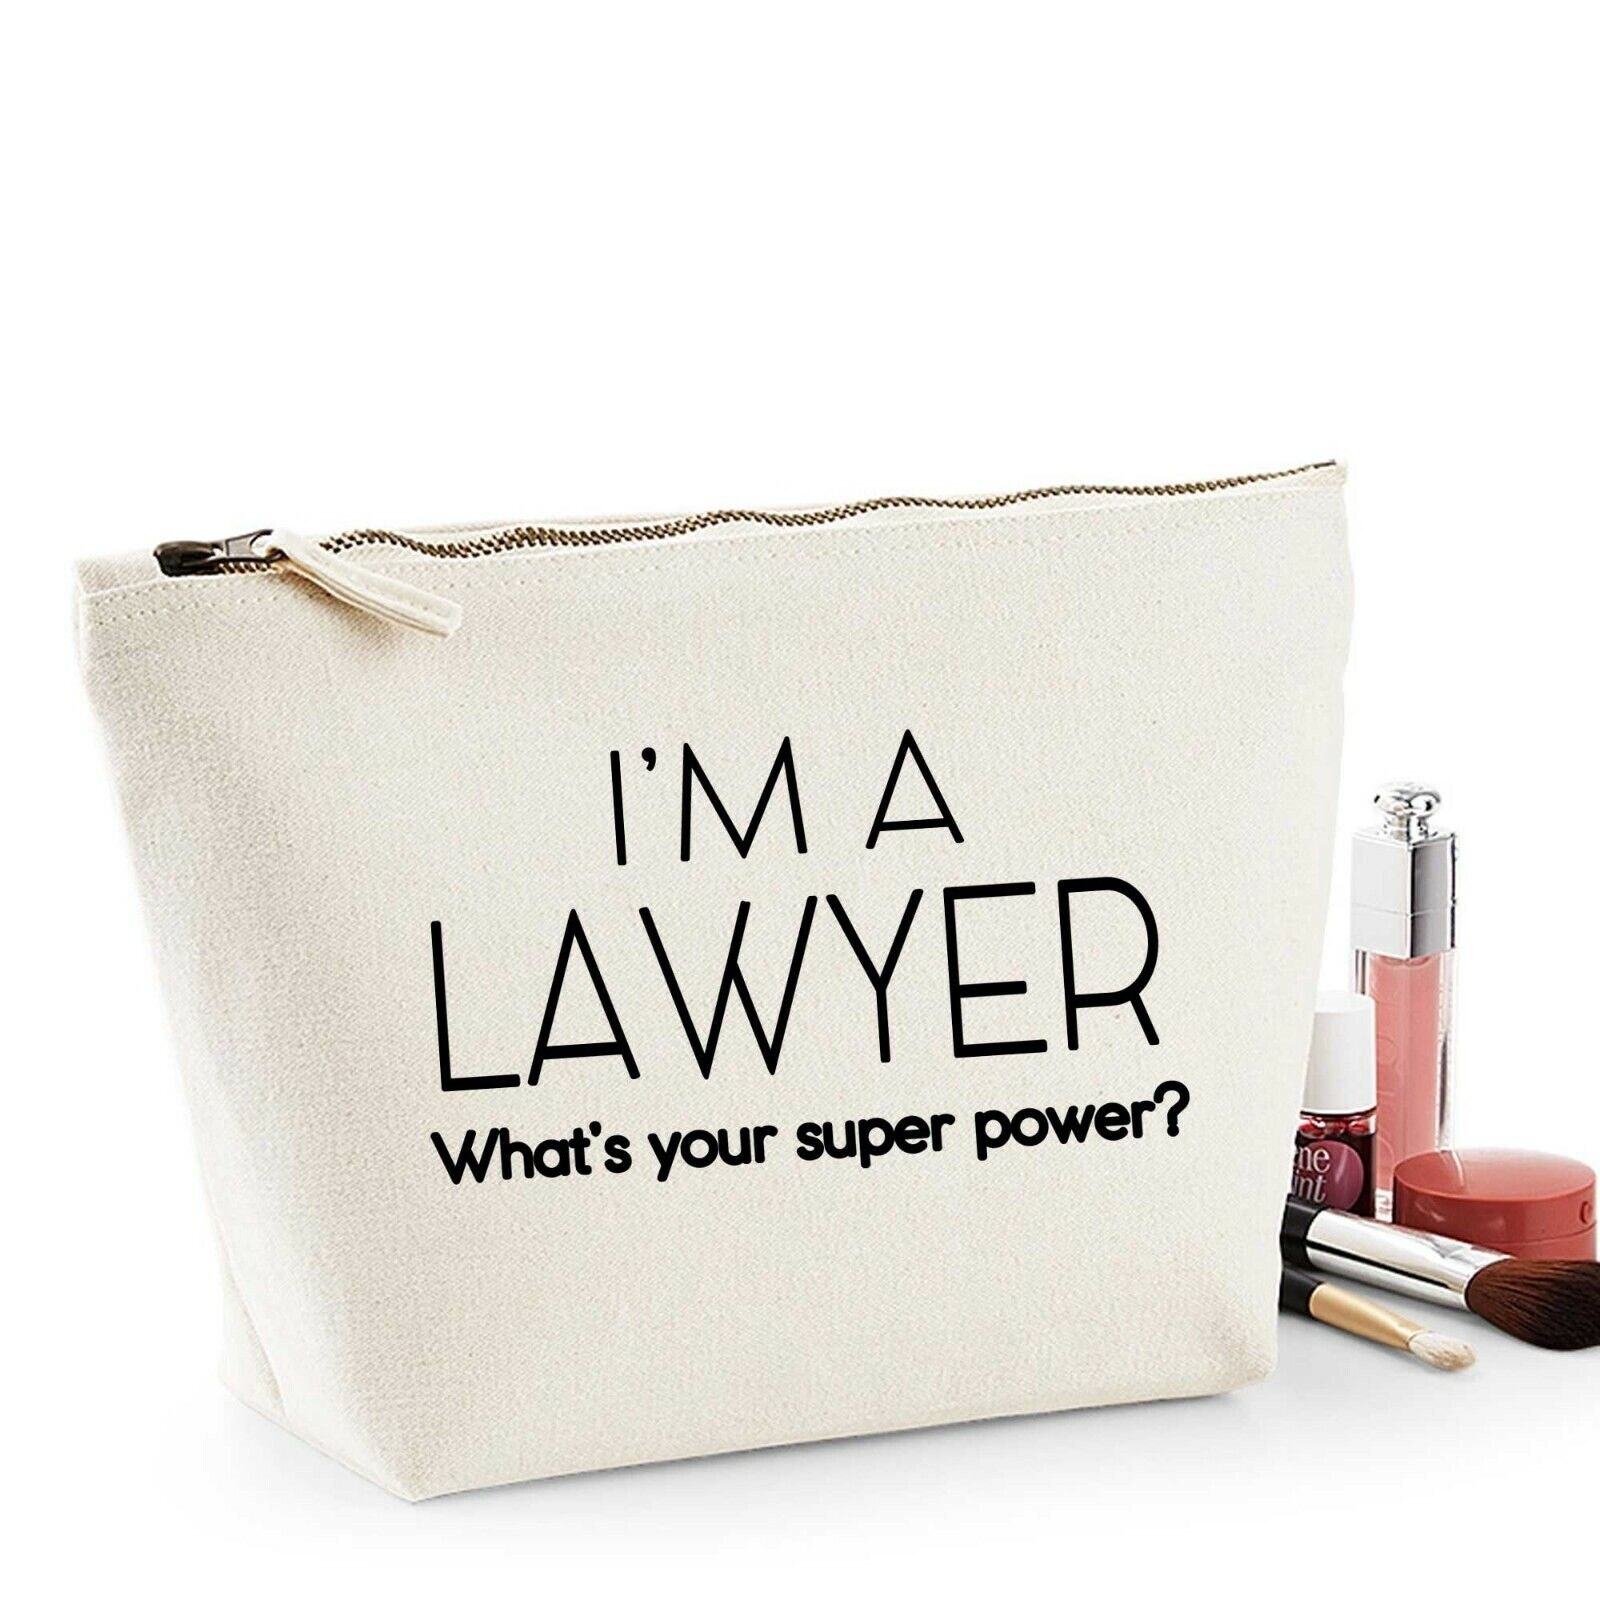 Lawyer Thank You Gift Women's Make Up Makeup Accessory Bag